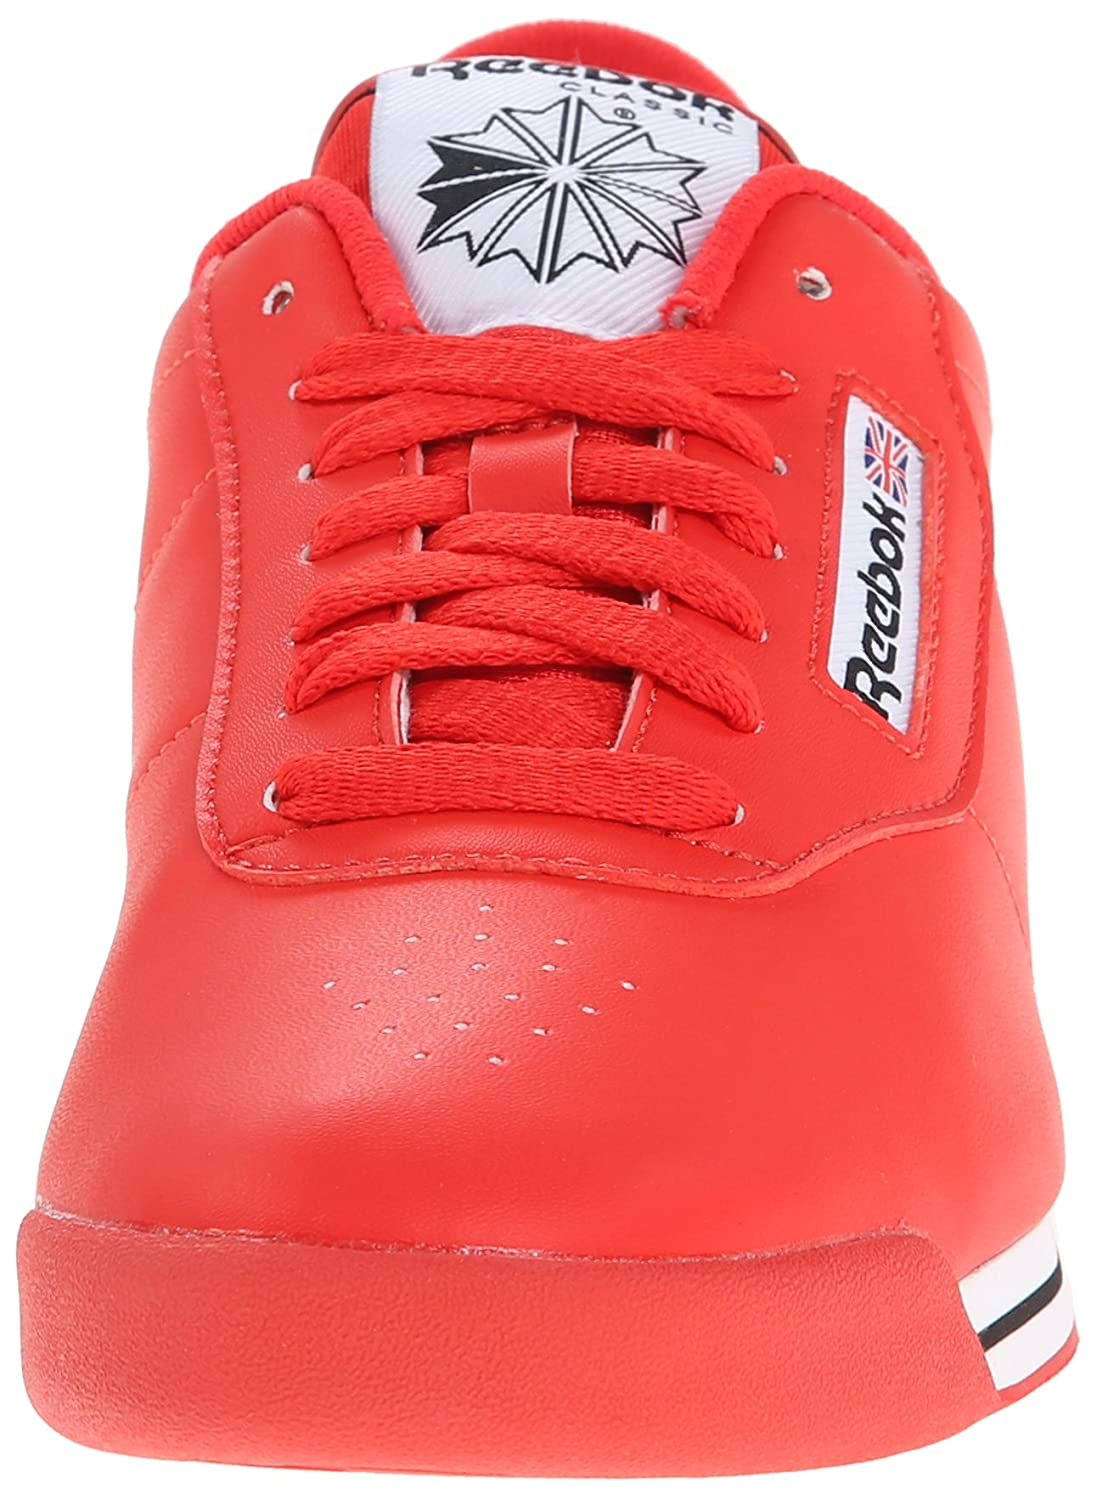 685e270359c Reebok Women s Princess Fashion Sneaker